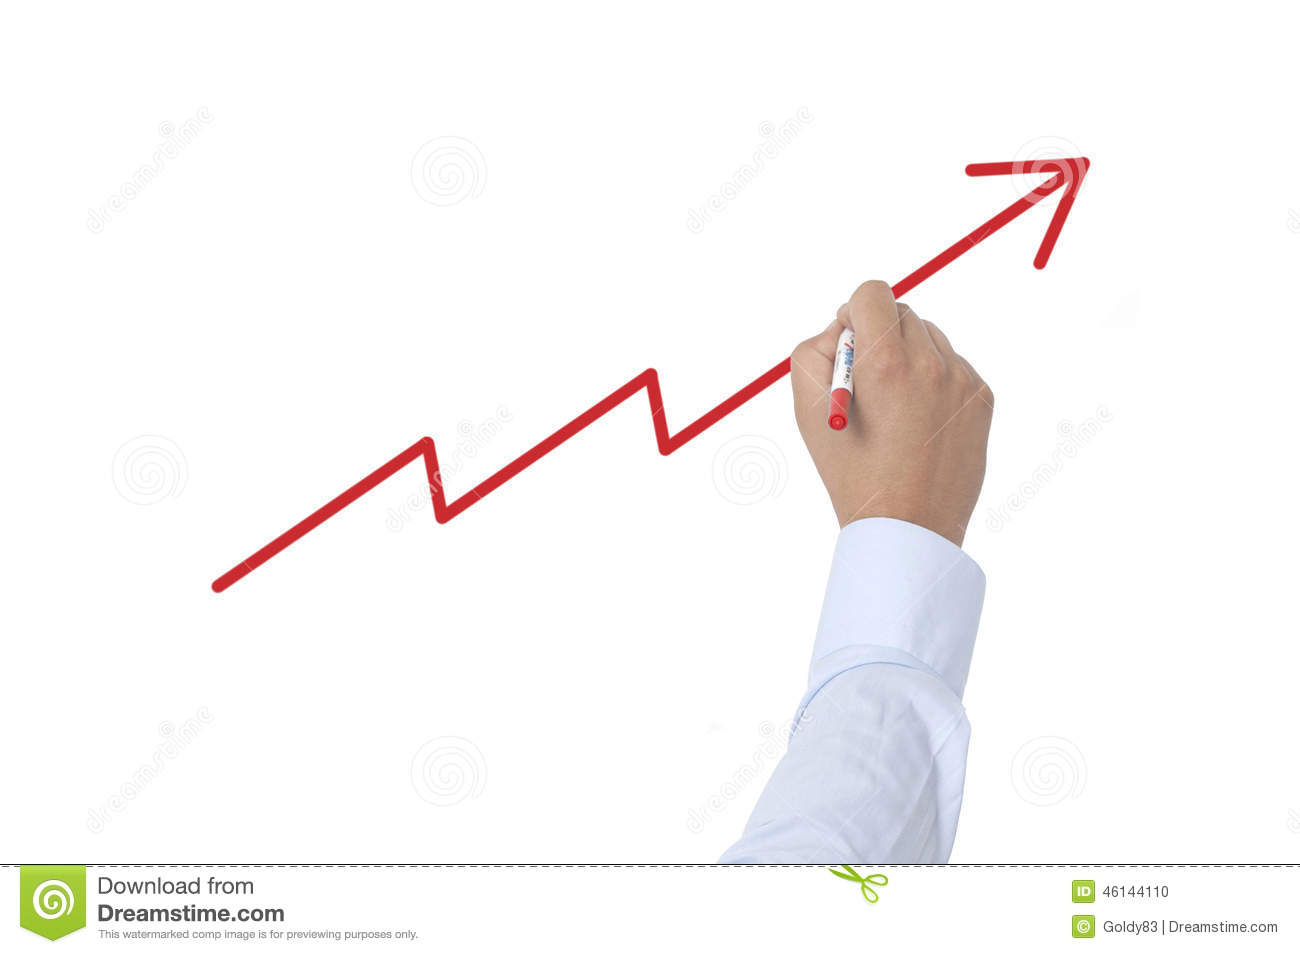 Drawing Line Graphs By Hand : Line graph drawing stock photo image